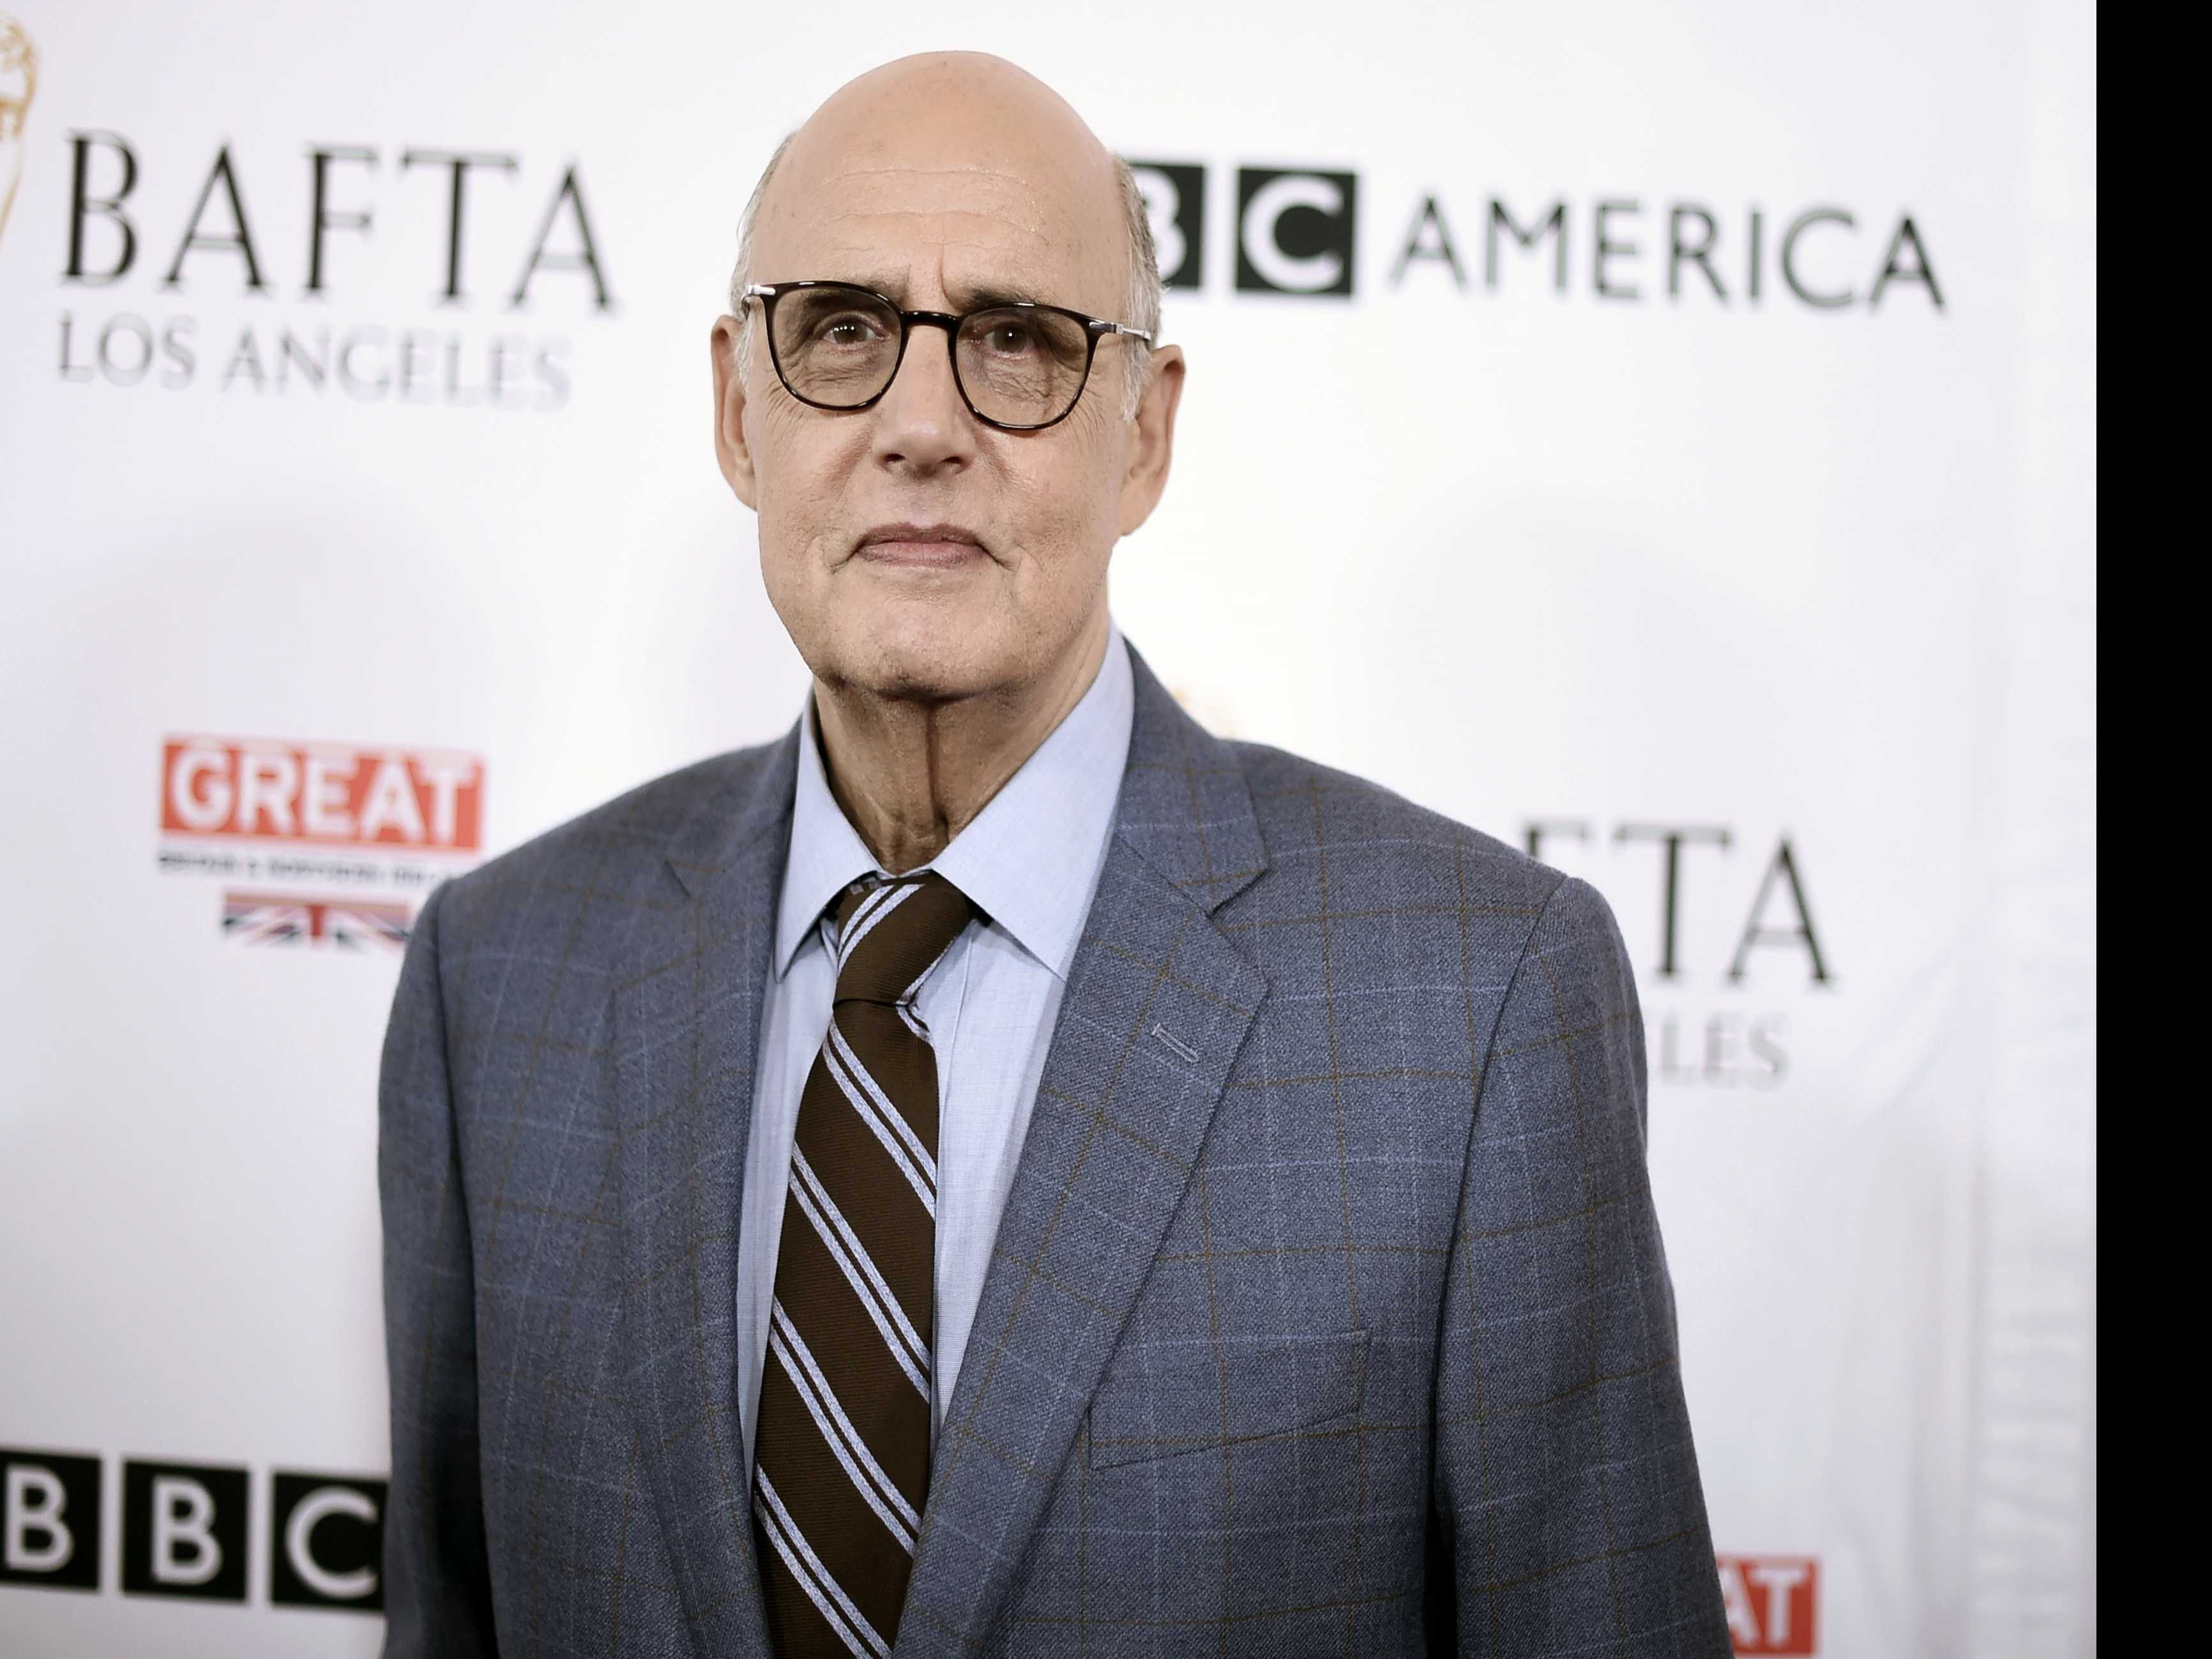 Comedian David Cross Says Most of 'Arrested Development' Cast Supports Jeffrey Tambor